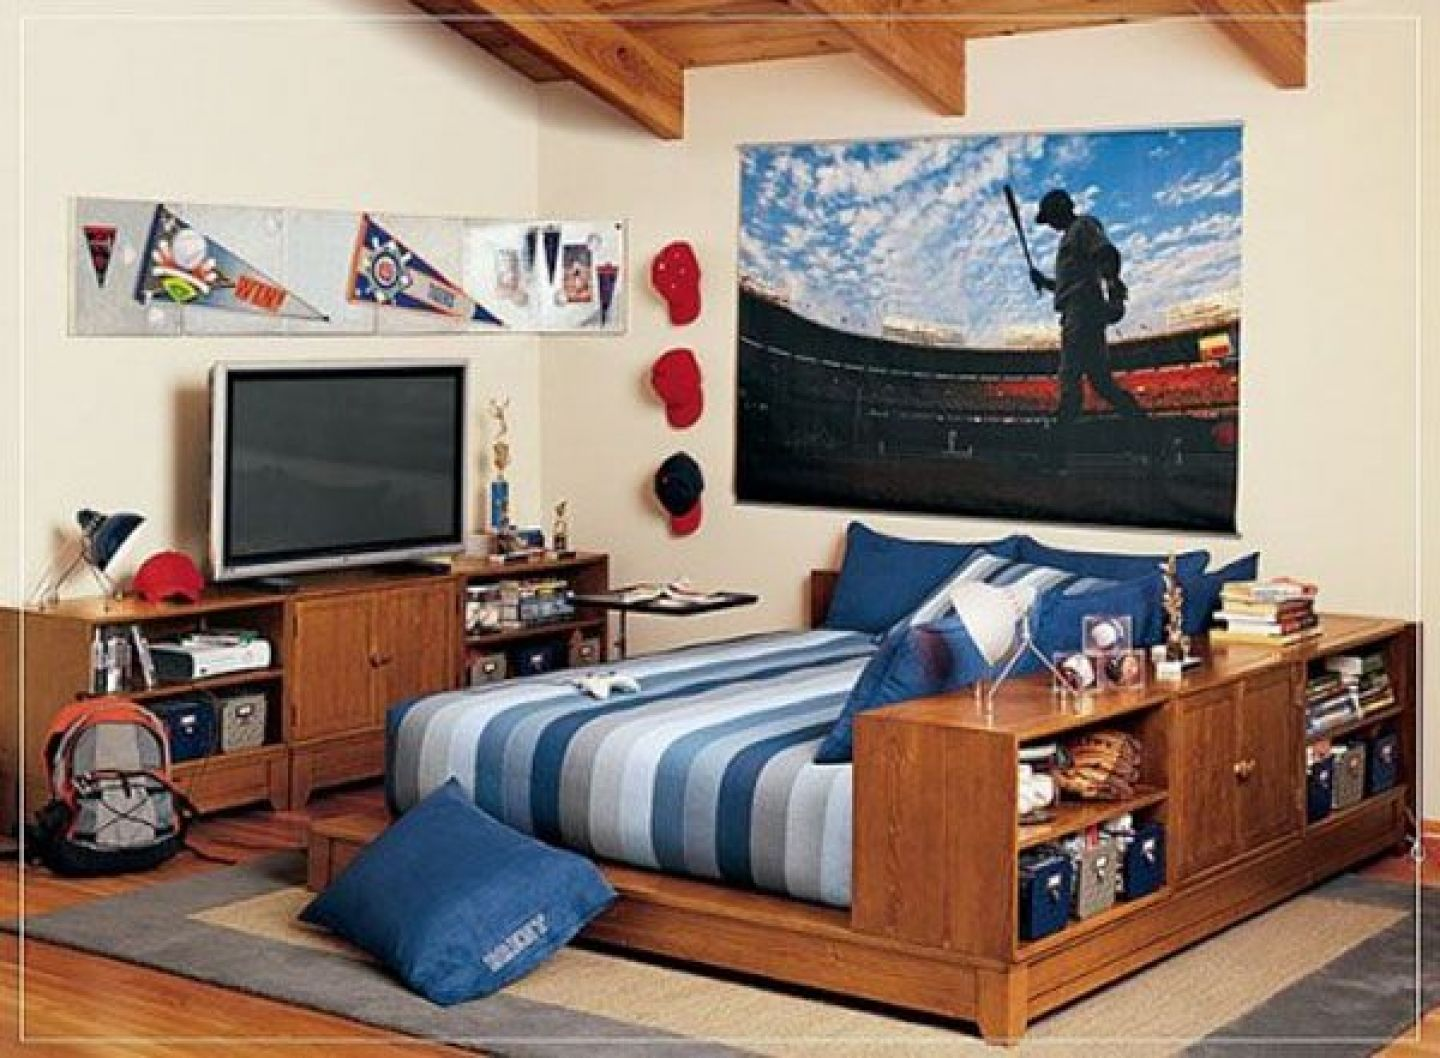 Bedroom wall designs for teenagers boys - Bedroom Teen Bedroom Design Baseball Theme Teen Boy Bedroom Wall Poster Hat Wall Hanger Wooden Bedding Bookcase Cabinet Stripe Bed Sheet Wooden Ceiling